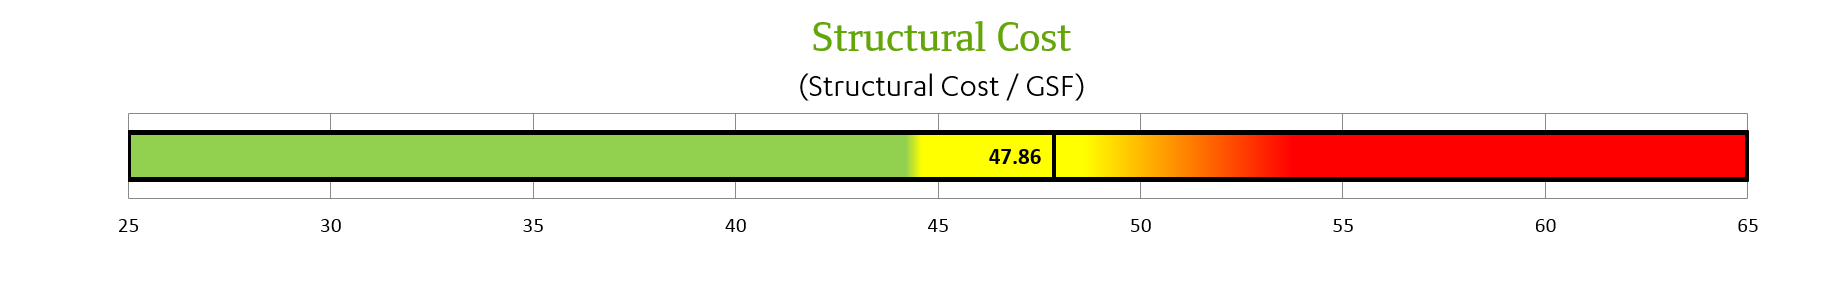 Structural cost analysis